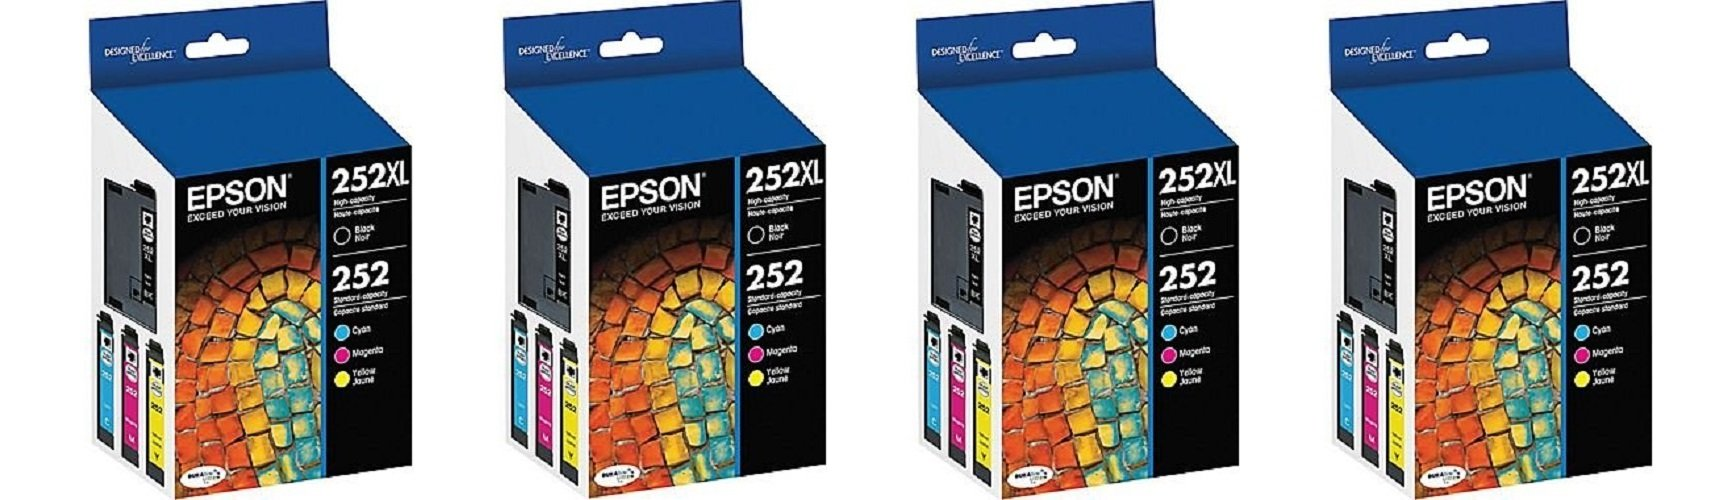 Epson T252XL-BCS Combo gGDFIC Pack, Black High Capacity and C/M/Y Standard Capacity Cartridges (4 Units)